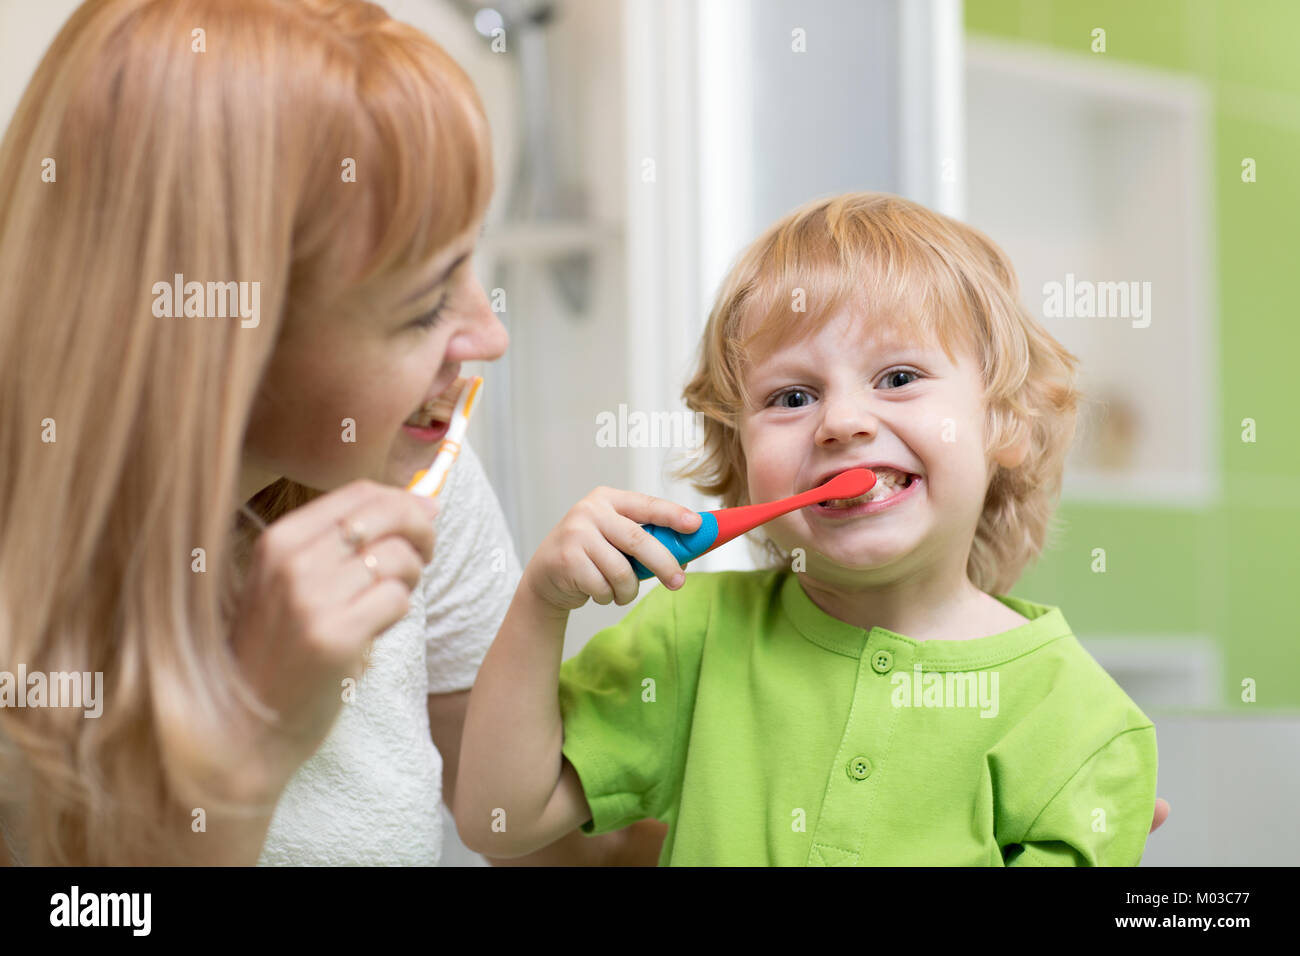 Mother teaches her child son how to brush teeth - Stock Image